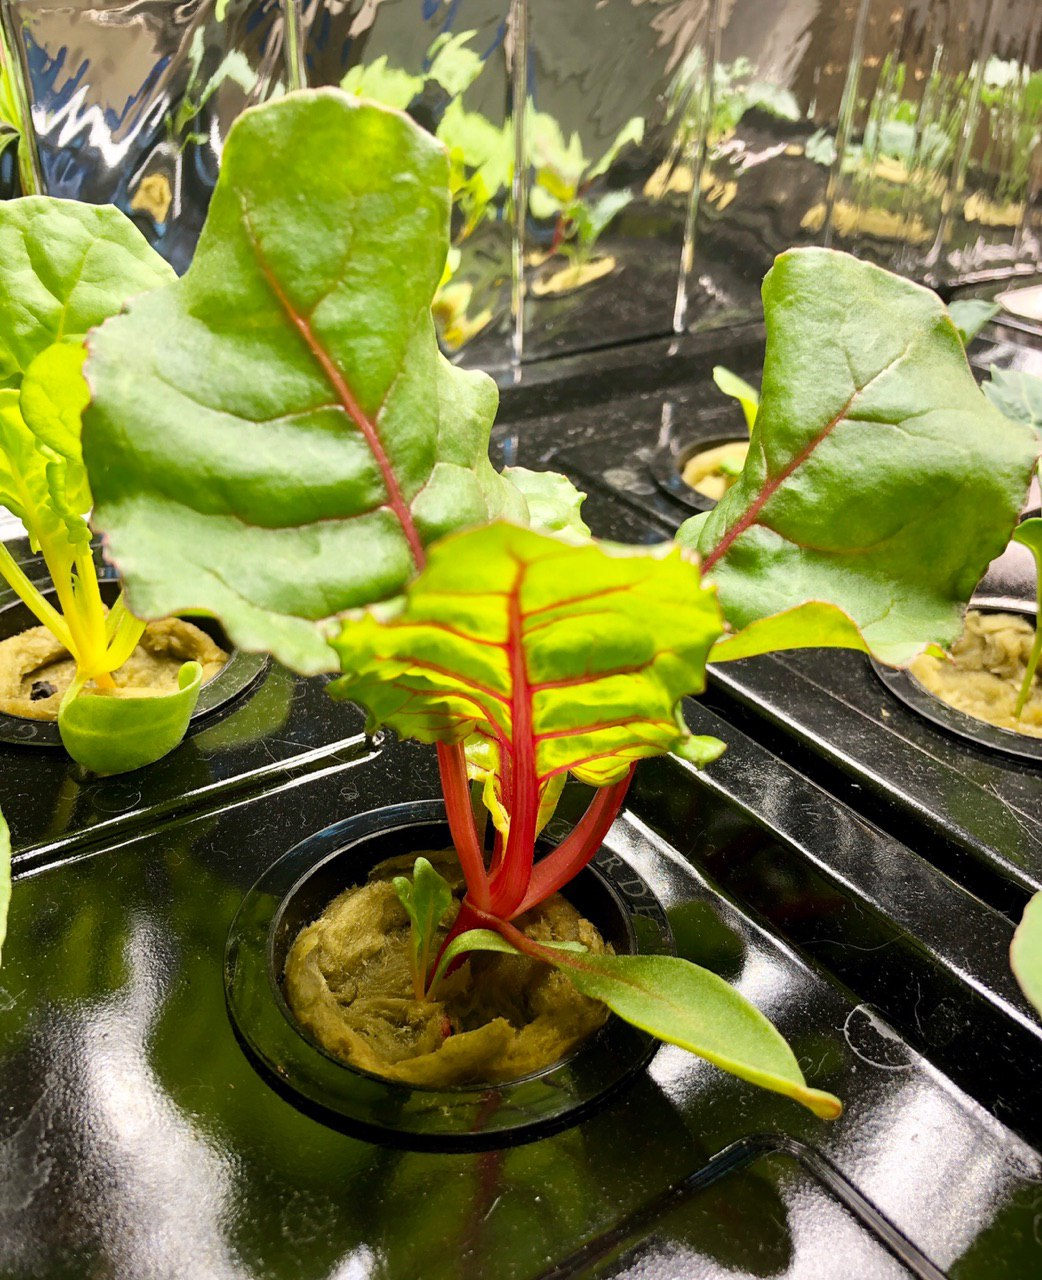 Growing Swiss Chard in Kratky Hydroponics – Update: Week 2